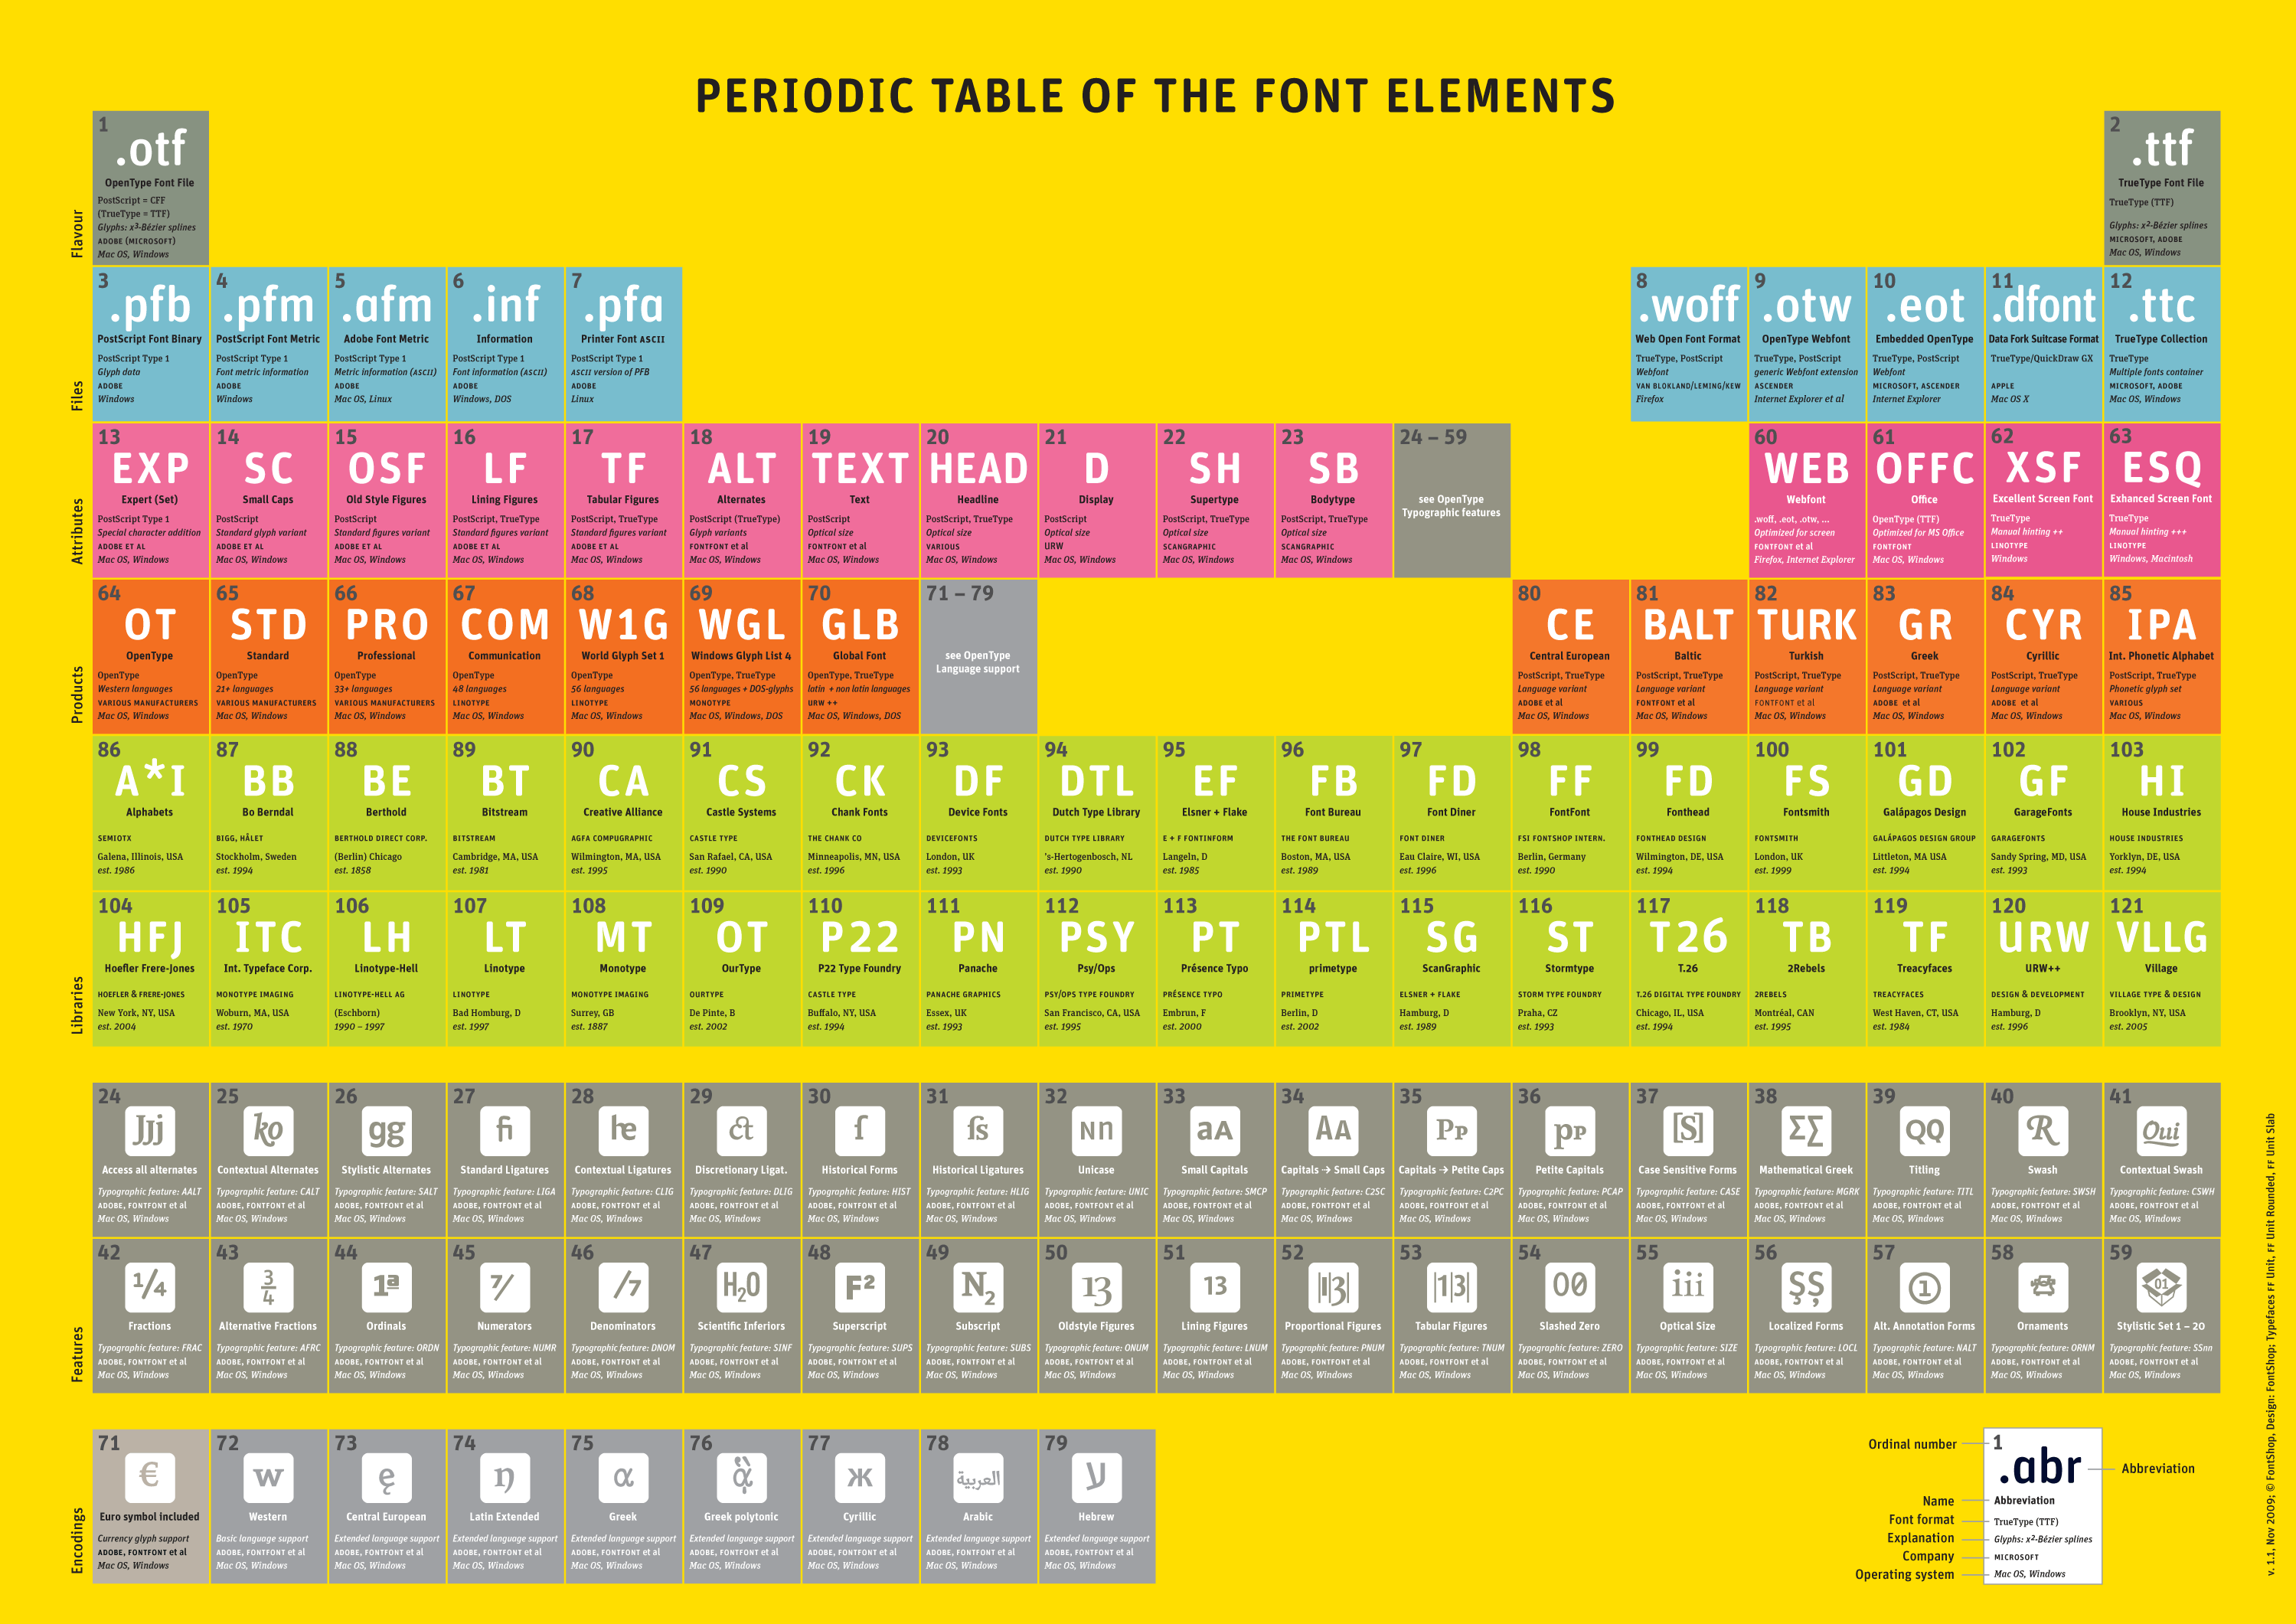 Periodic table of font elements 11 photos by fontshop periodic table of font elements 11 photos by fontshop imported gamestrikefo Choice Image